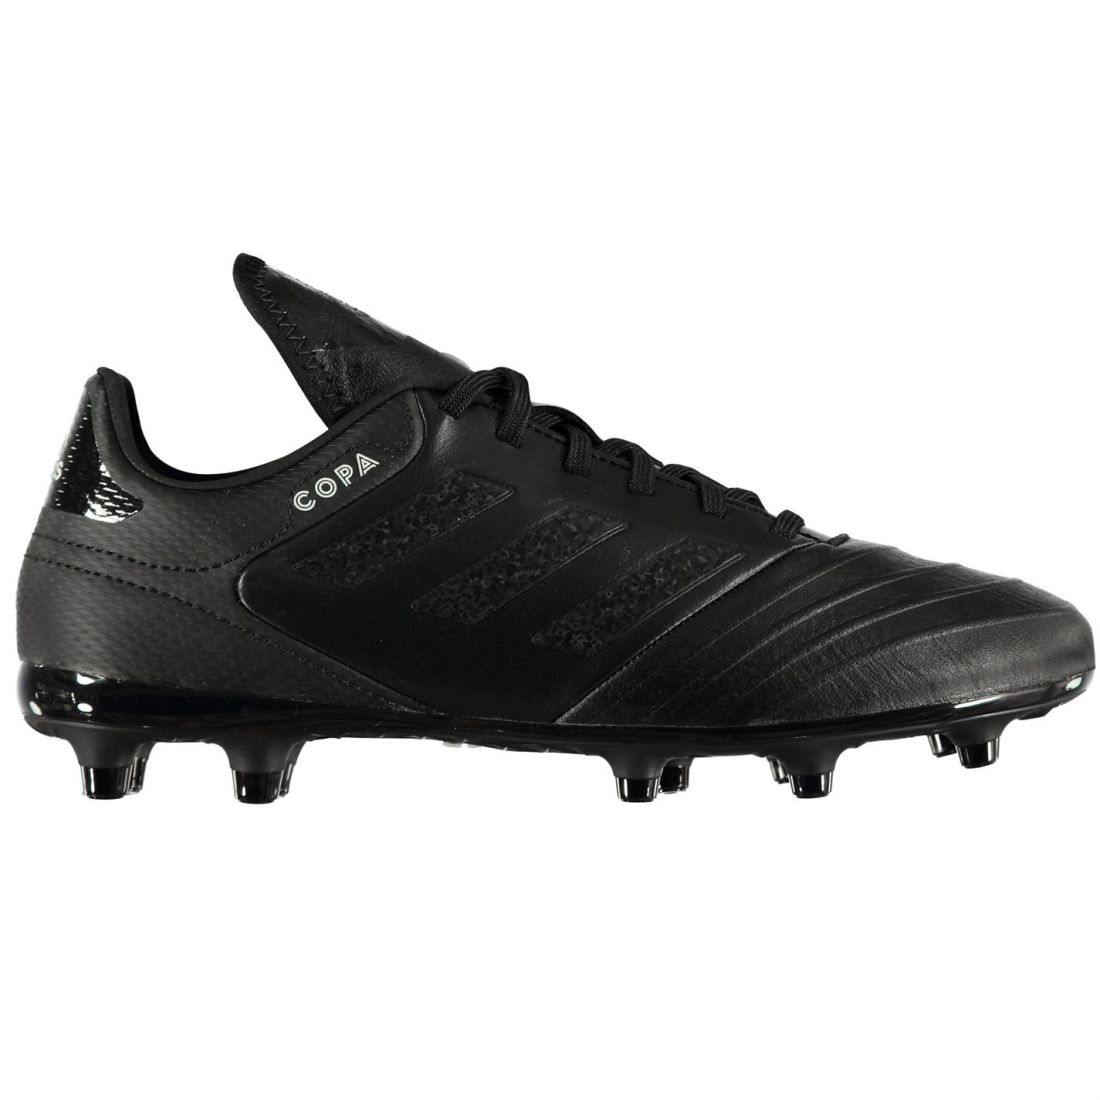 adidas Mens Copa 18.3 FG Football Boots Firm Ground Lace Up Studs